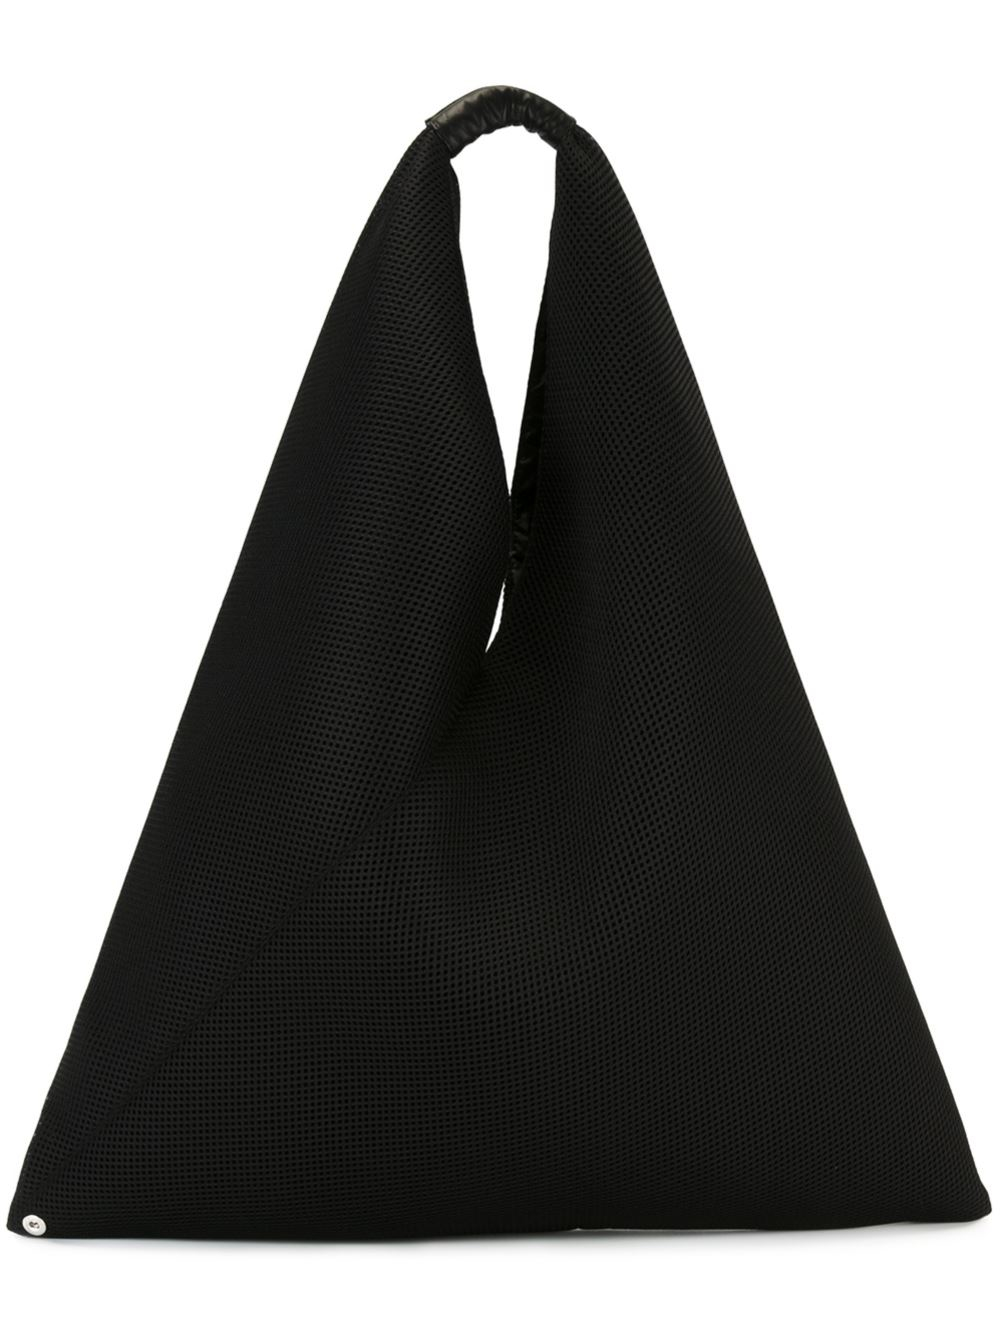 MM6 by Maison Martin Margiela Leather Textured Sack Tote in Black